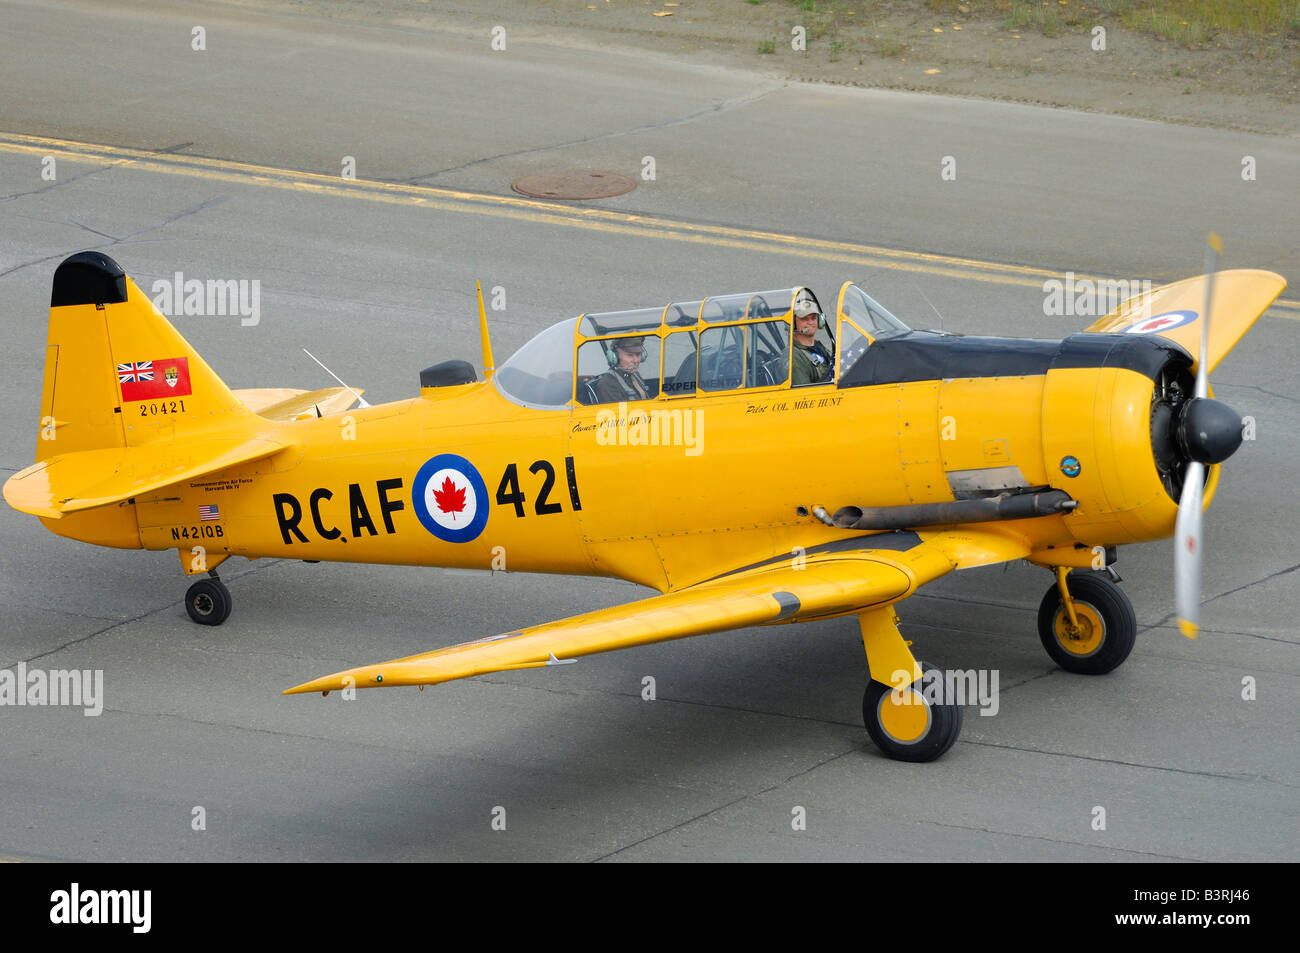 Old trainer plane North American AT-6 Texan on the taxiway during an airshow in Alaska - Stock Image